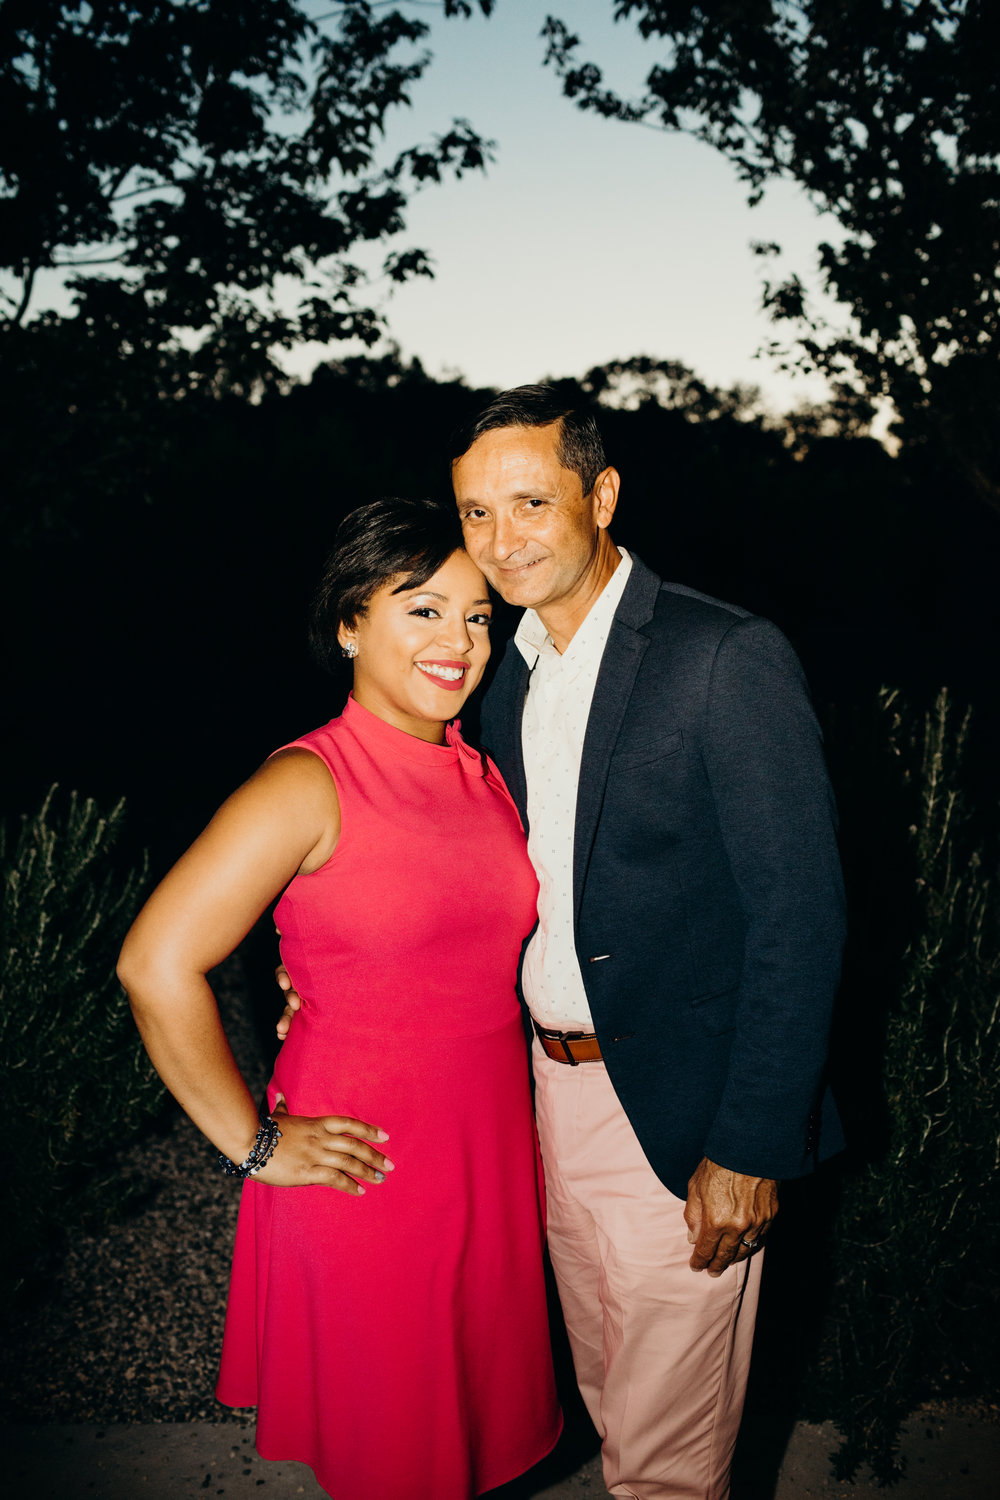 Jose and Valerie | Wedding | Bok Tower Gardens | Photography by Vanessa Boy (987 of 101).jpg